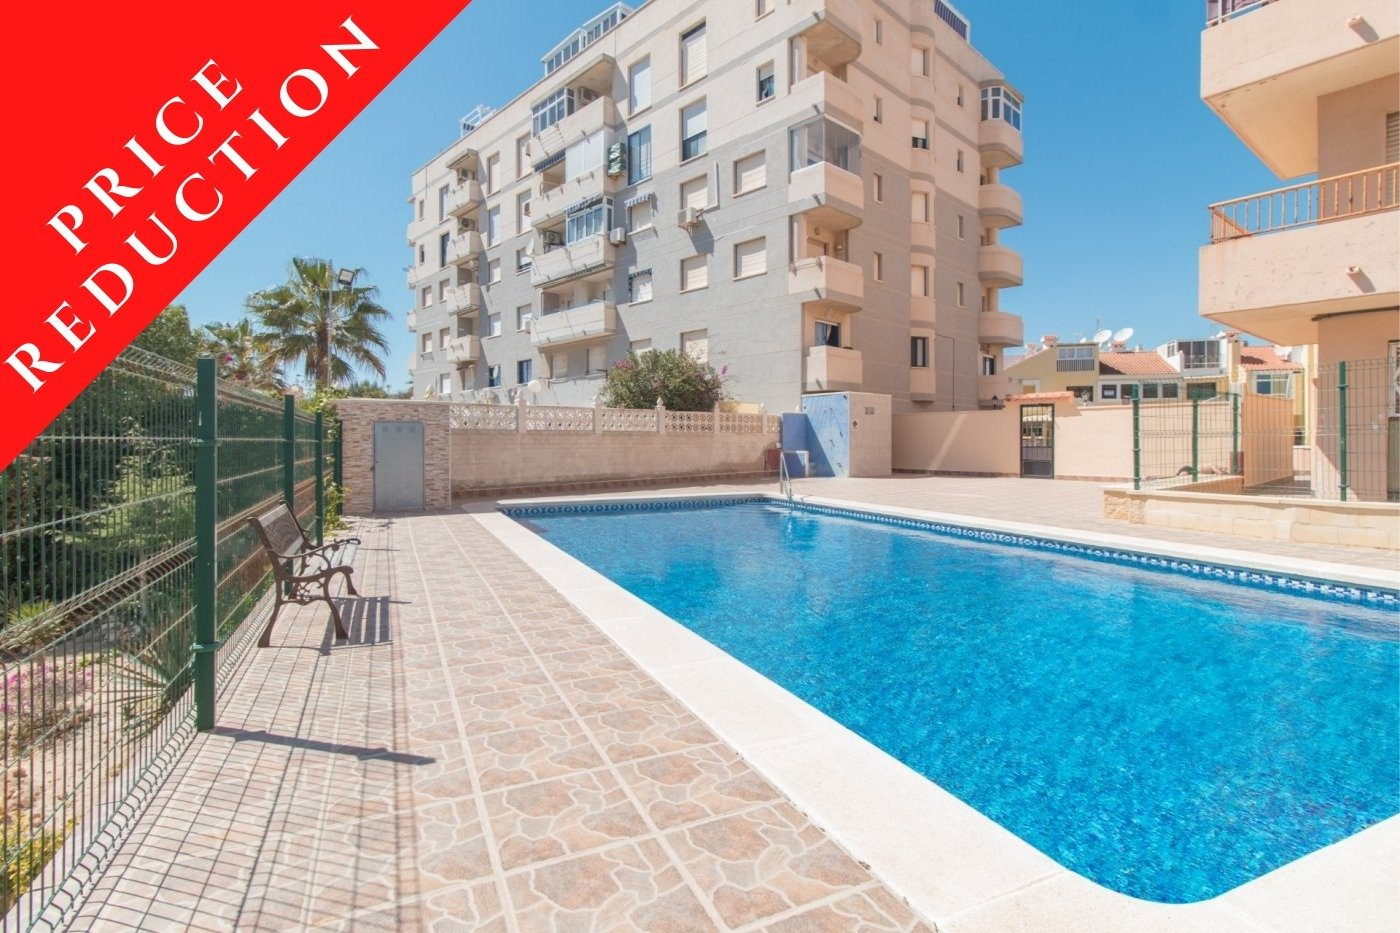 1 Bedroom Apartment For Sale with Swimming Pool in La Mata